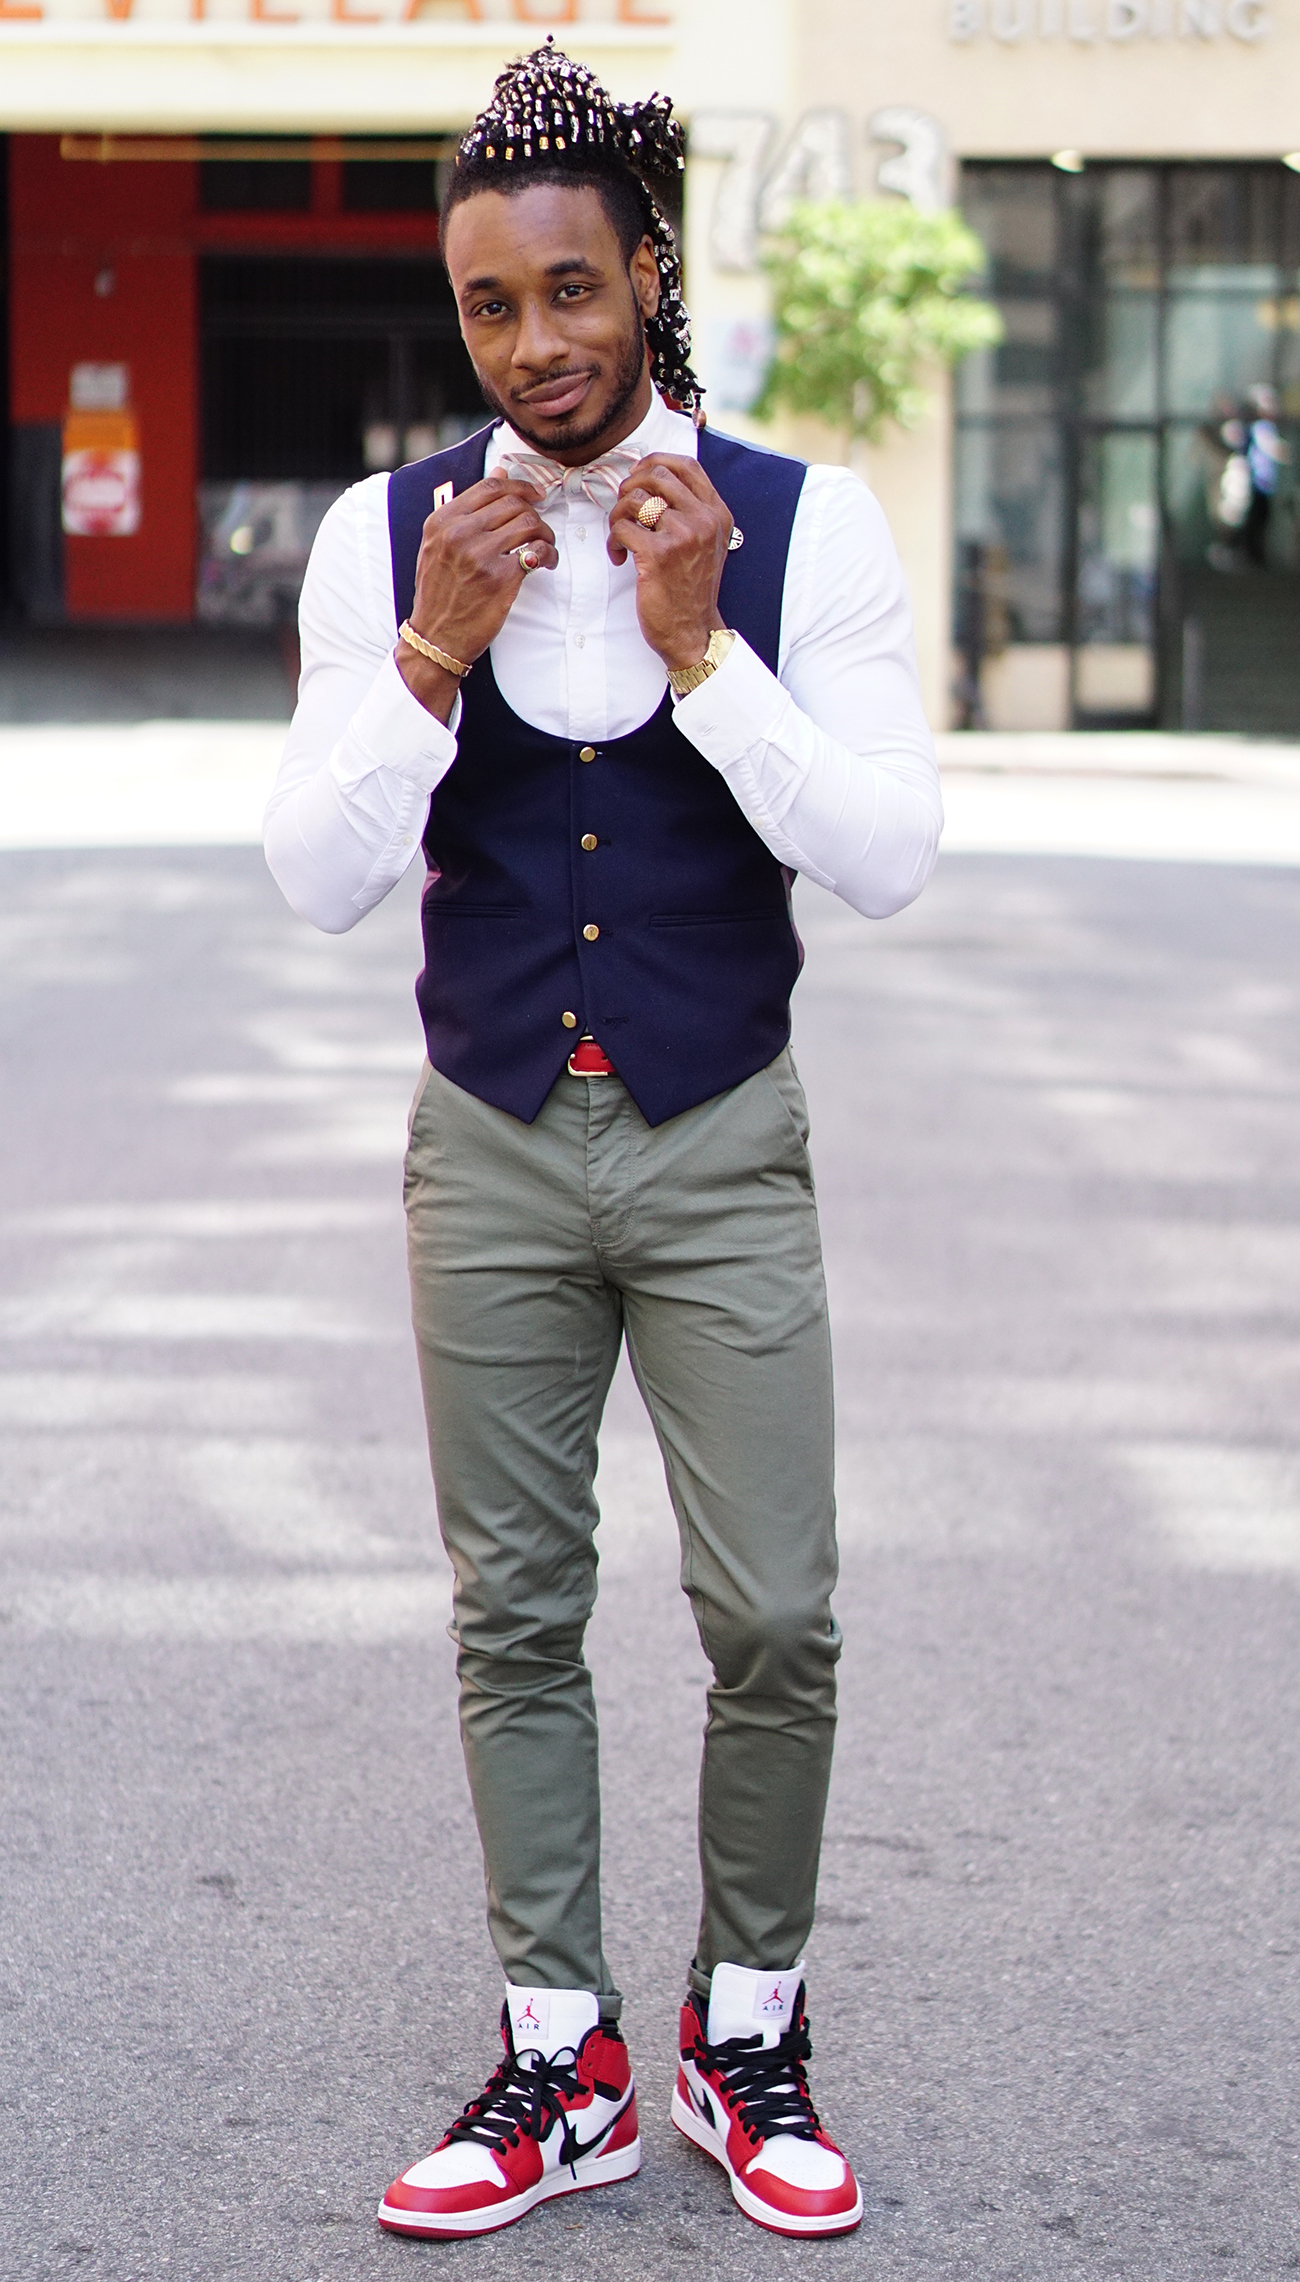 casual dress style for men photo - 1